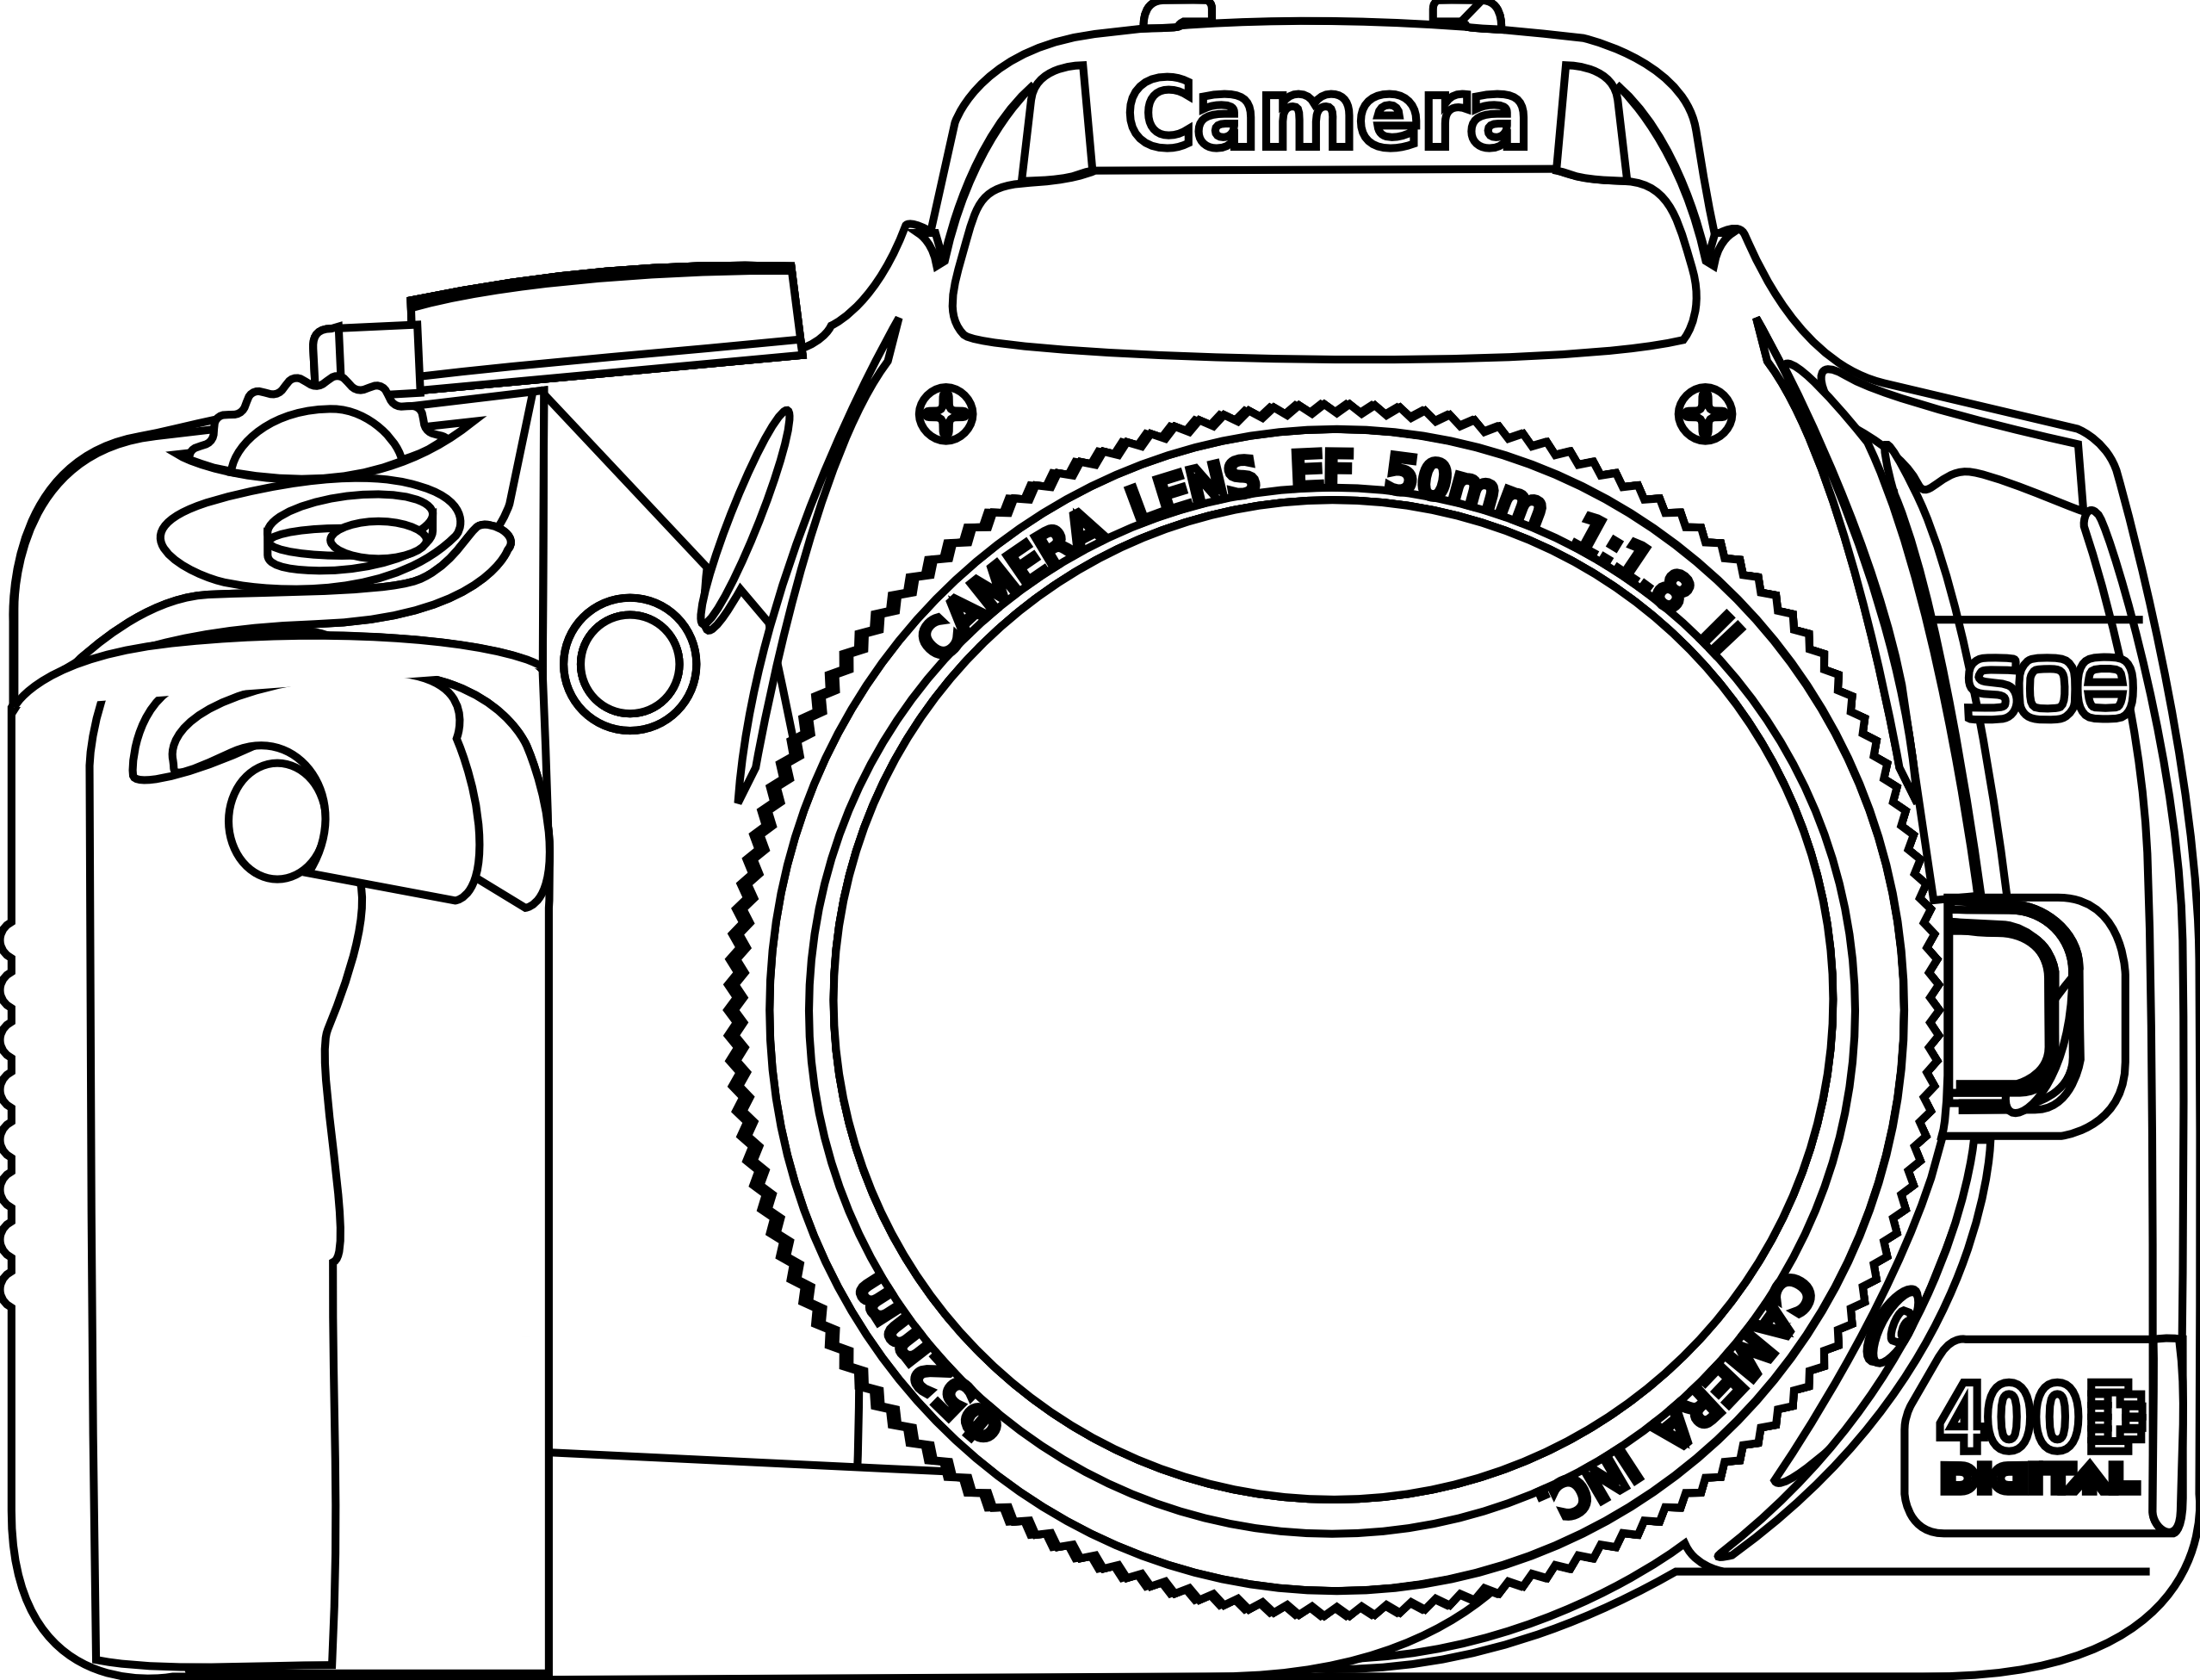 Camera Clip Art Google Search Camera Clip Art Coloring Pages Best Camera For Portraits